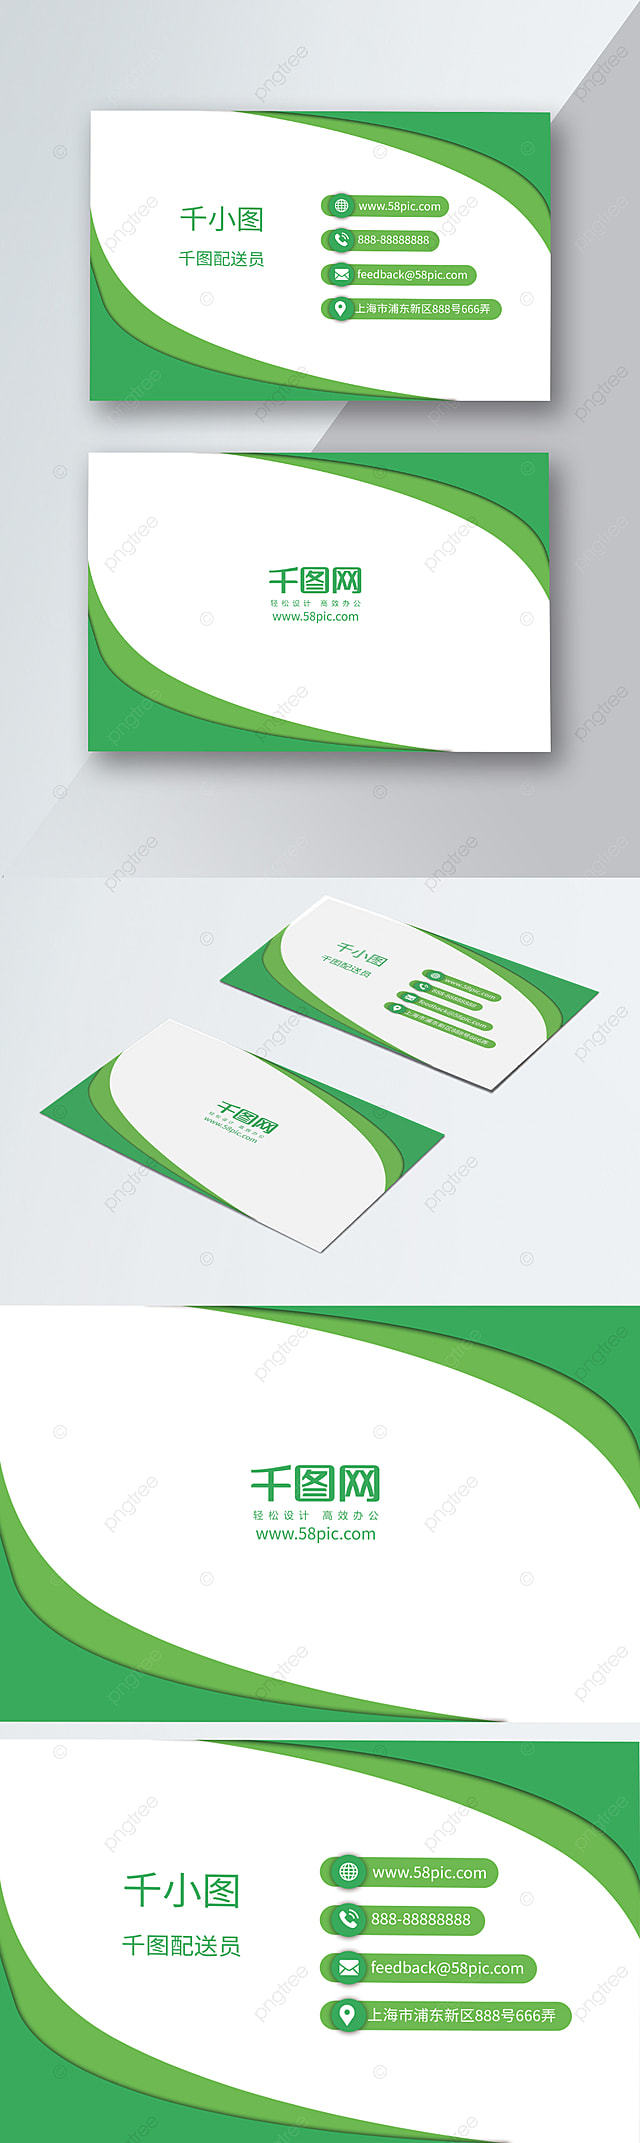 Cool Skin Rice Bag Meal Delivery Psd Template For Free Download On